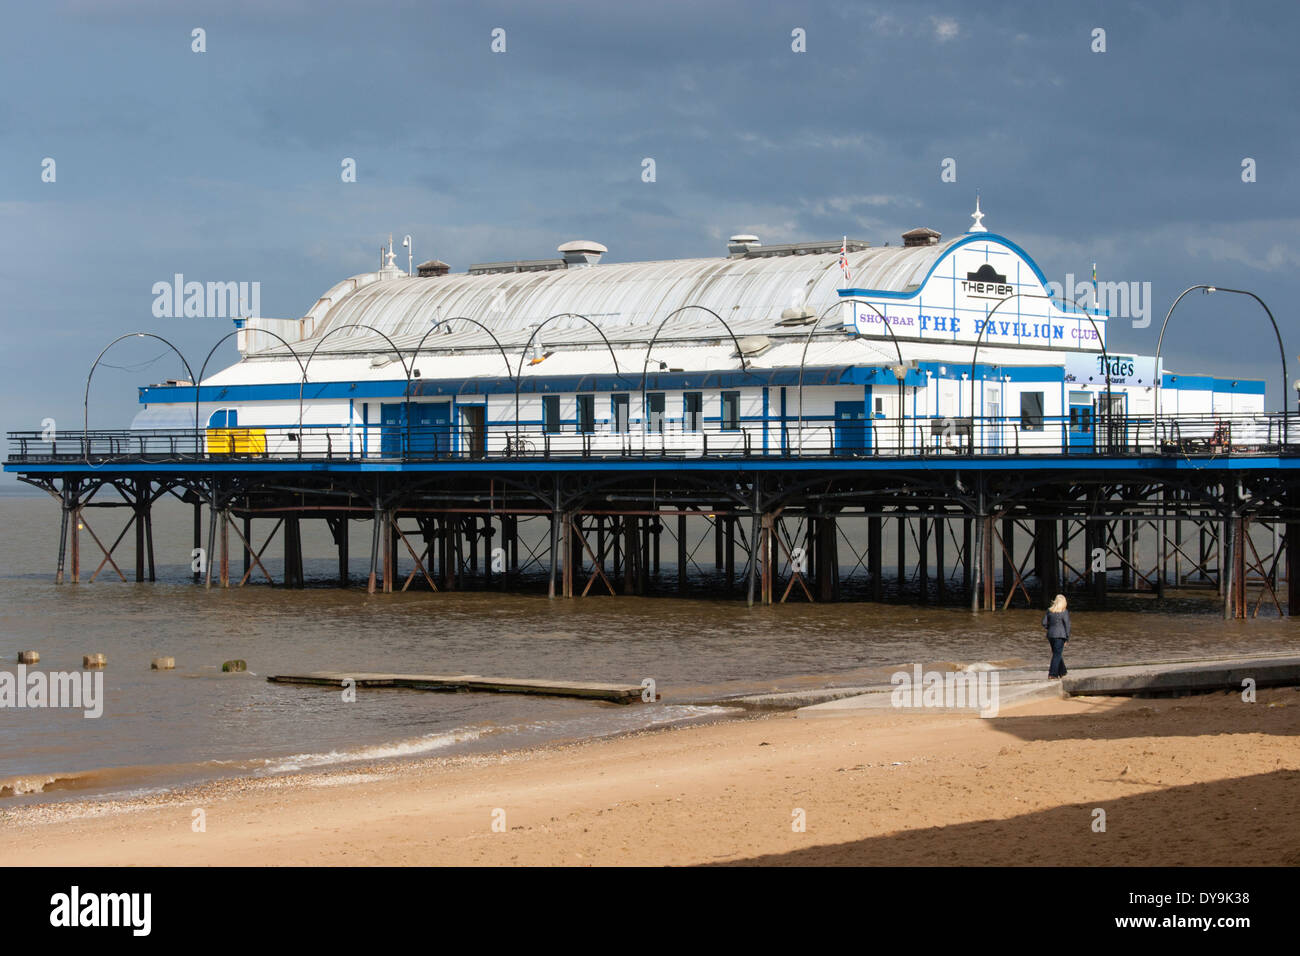 The pier at Cleethorpes, North East Lincolnshire, one walker on the beach - Stock Image